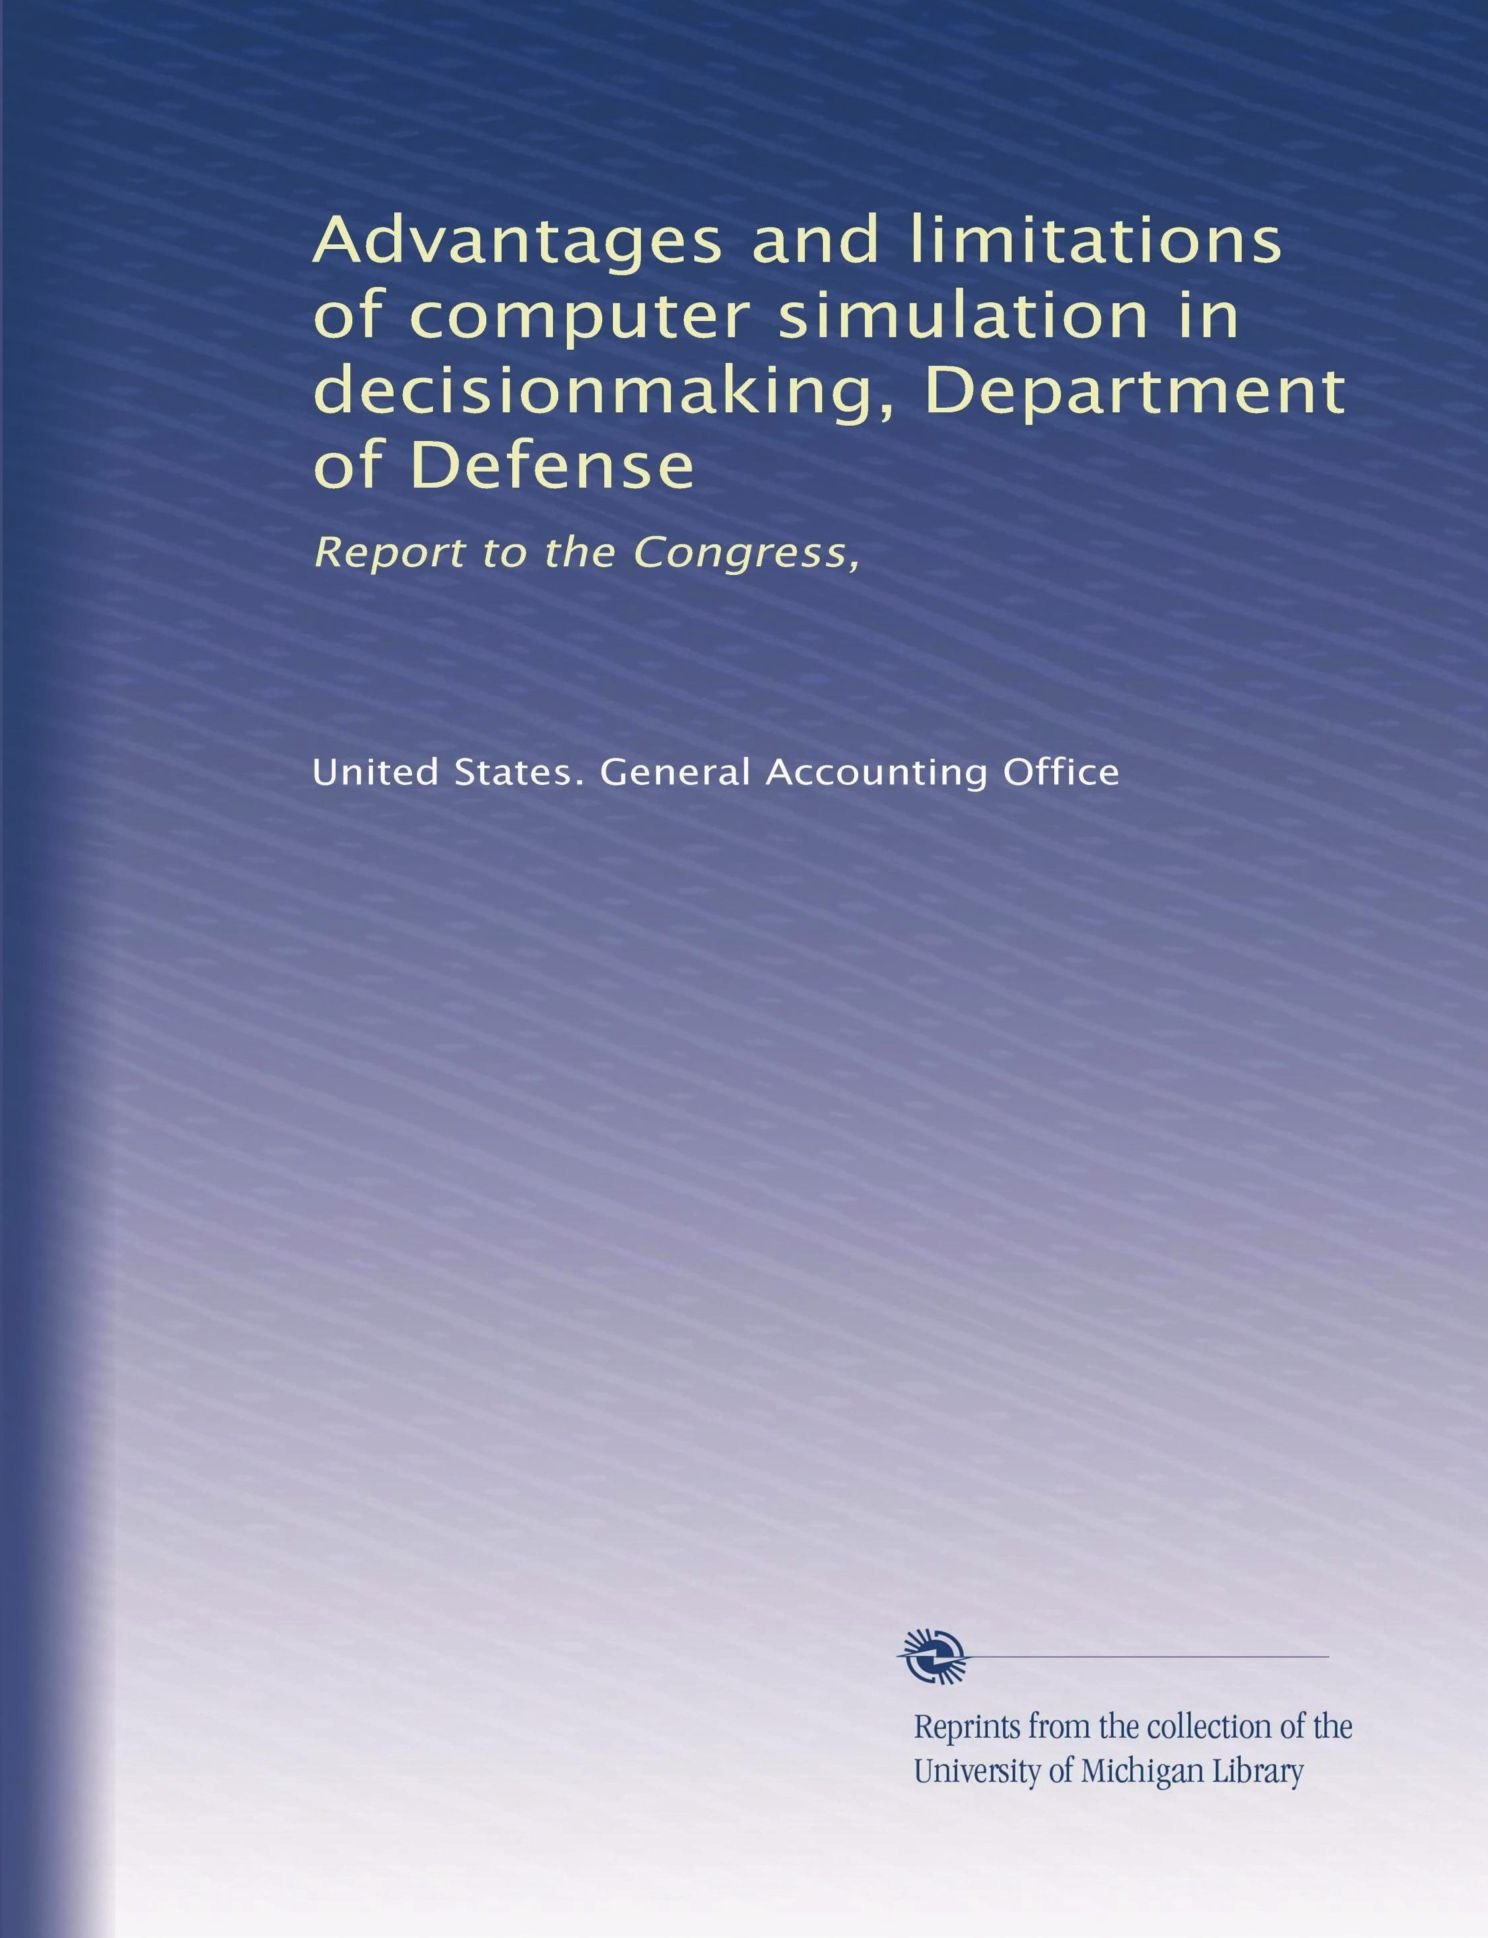 Advantages and limitations of computer simulation in